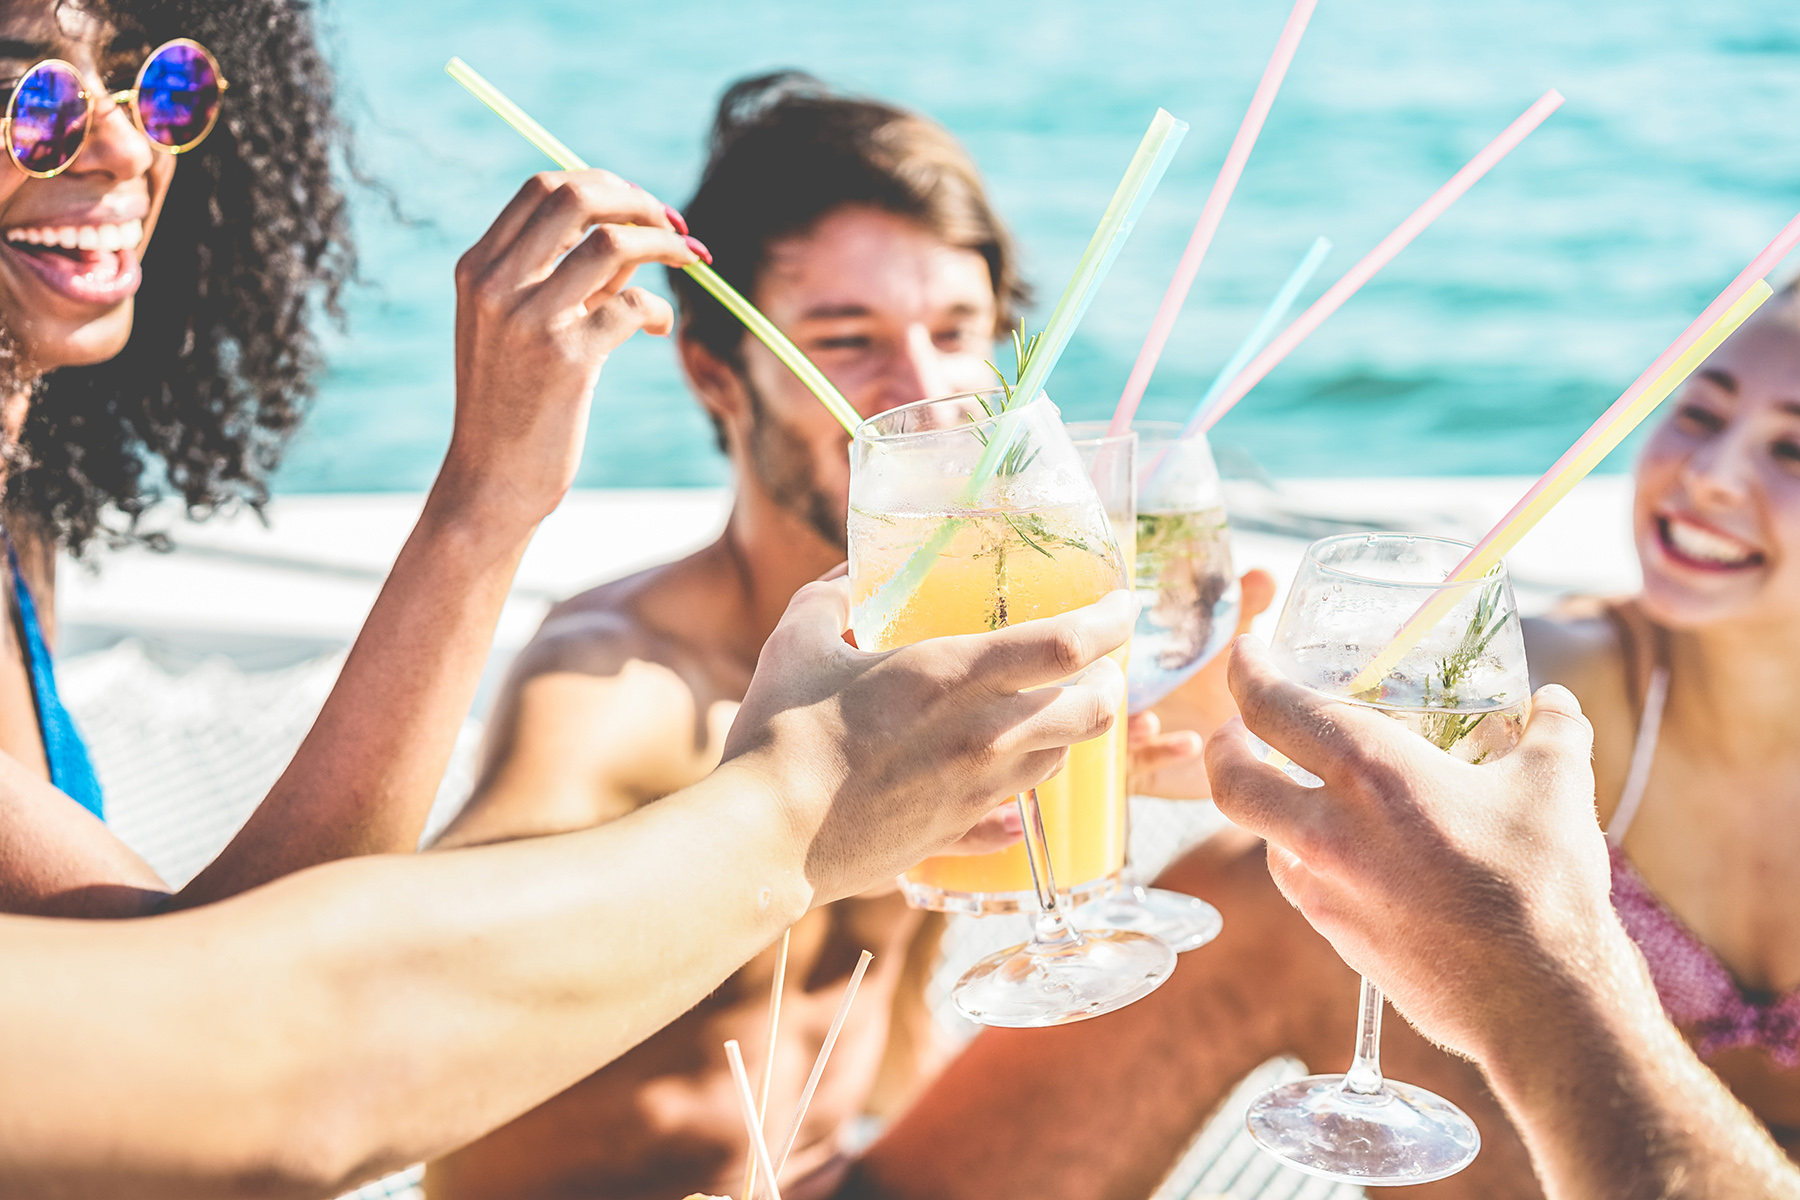 Saying 'cheers' in the Pacific with tropical drinks